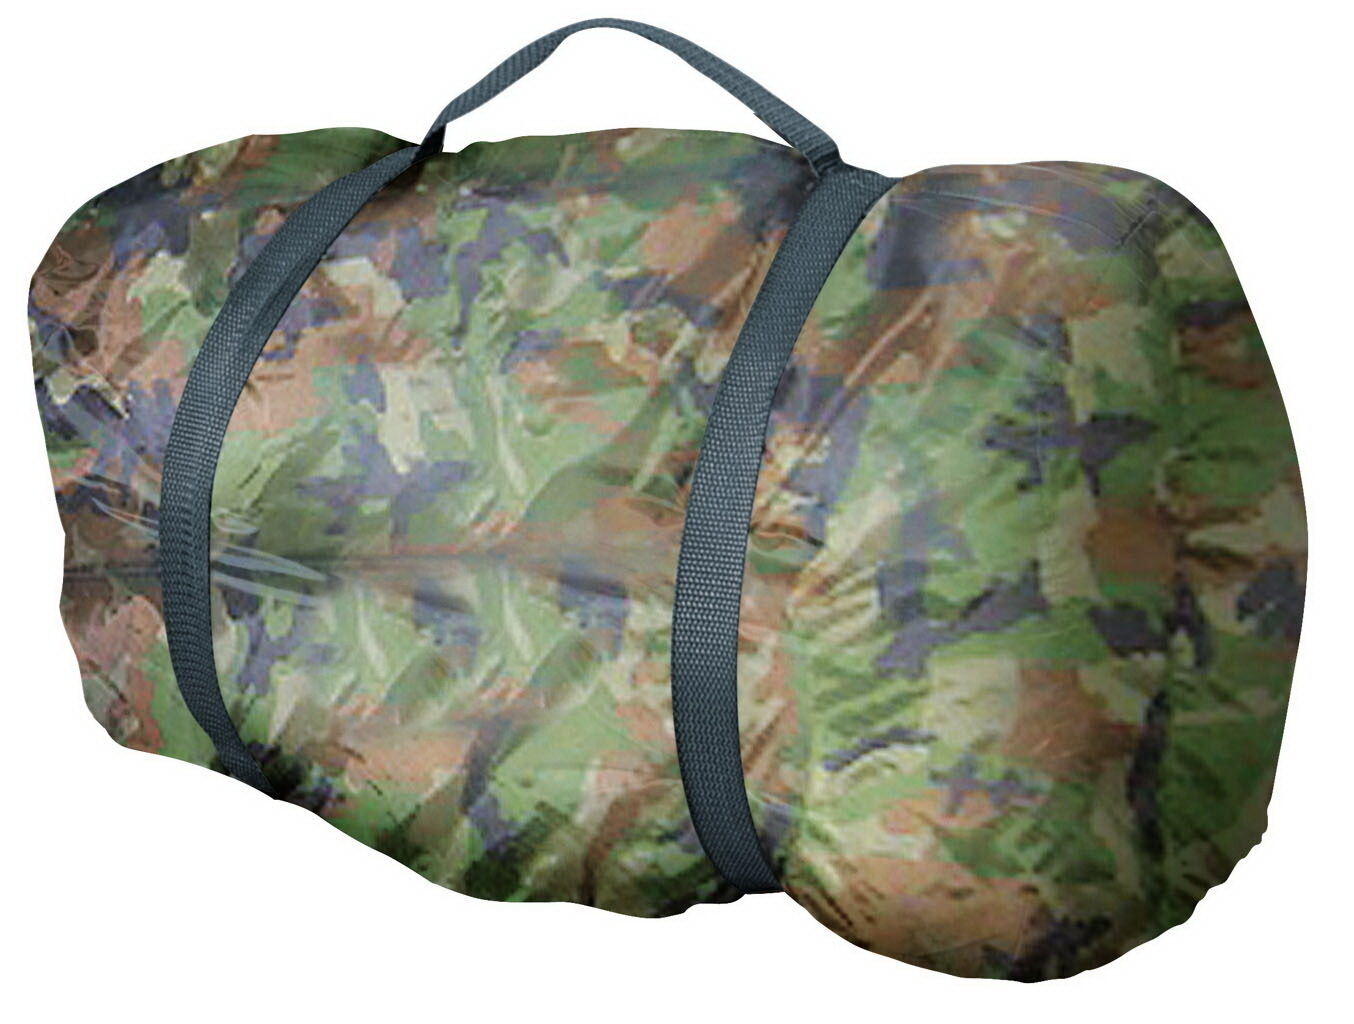 Army Pilotes Sac Sac Pilotes de couchage US Woodland Camouflage Camouflage Camo chasseur pêcheur camping BW a1fe0b